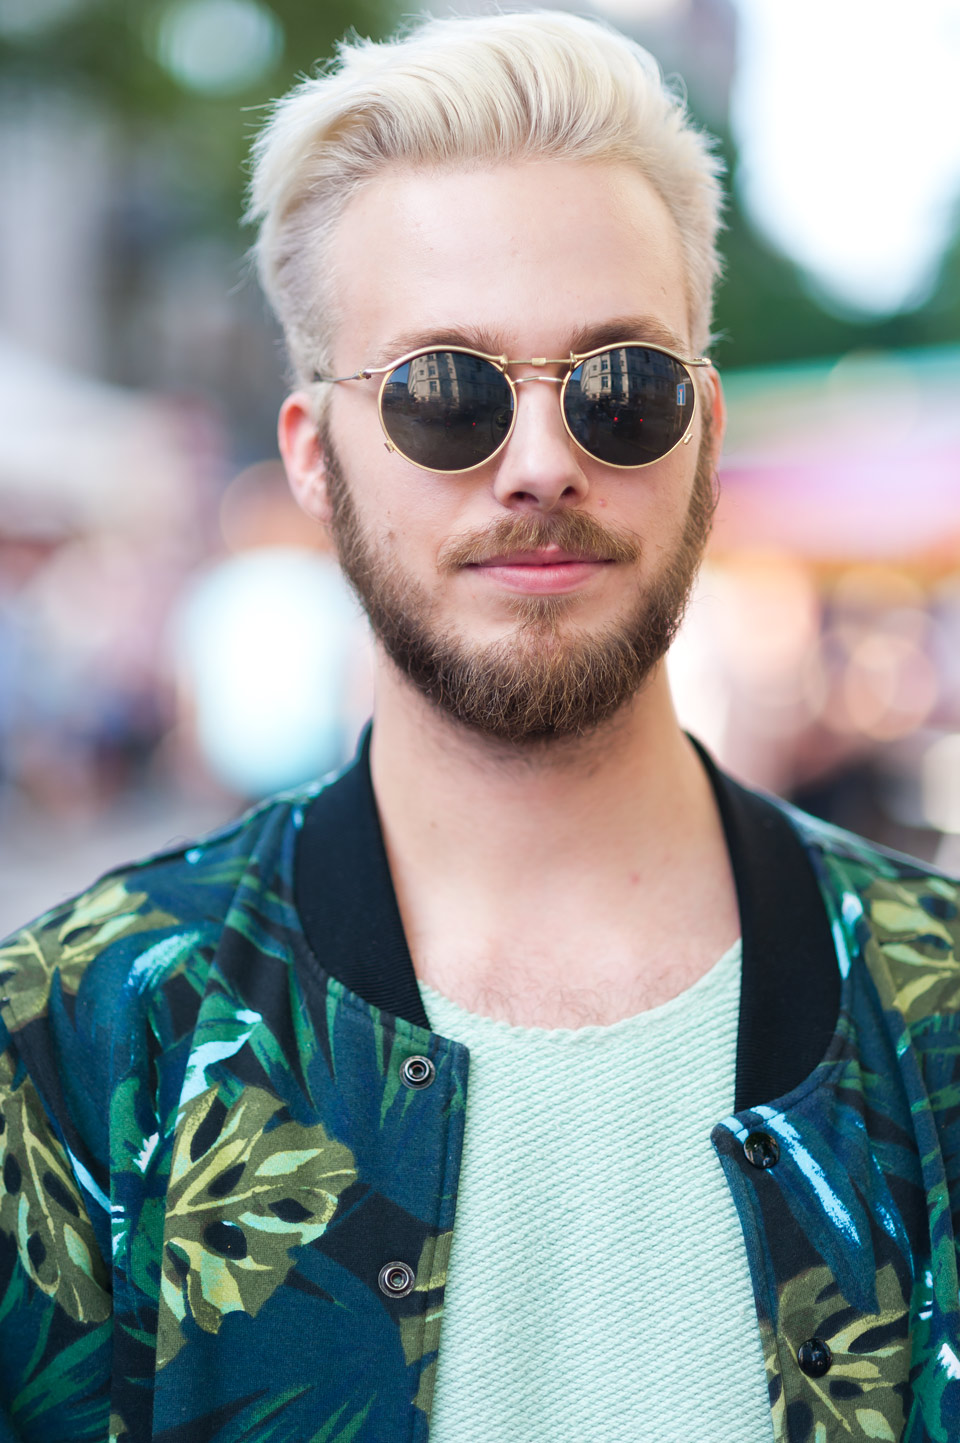 martin.hamburg.fashionjunk_streetstyle_fashion_blog_blogger_portrait